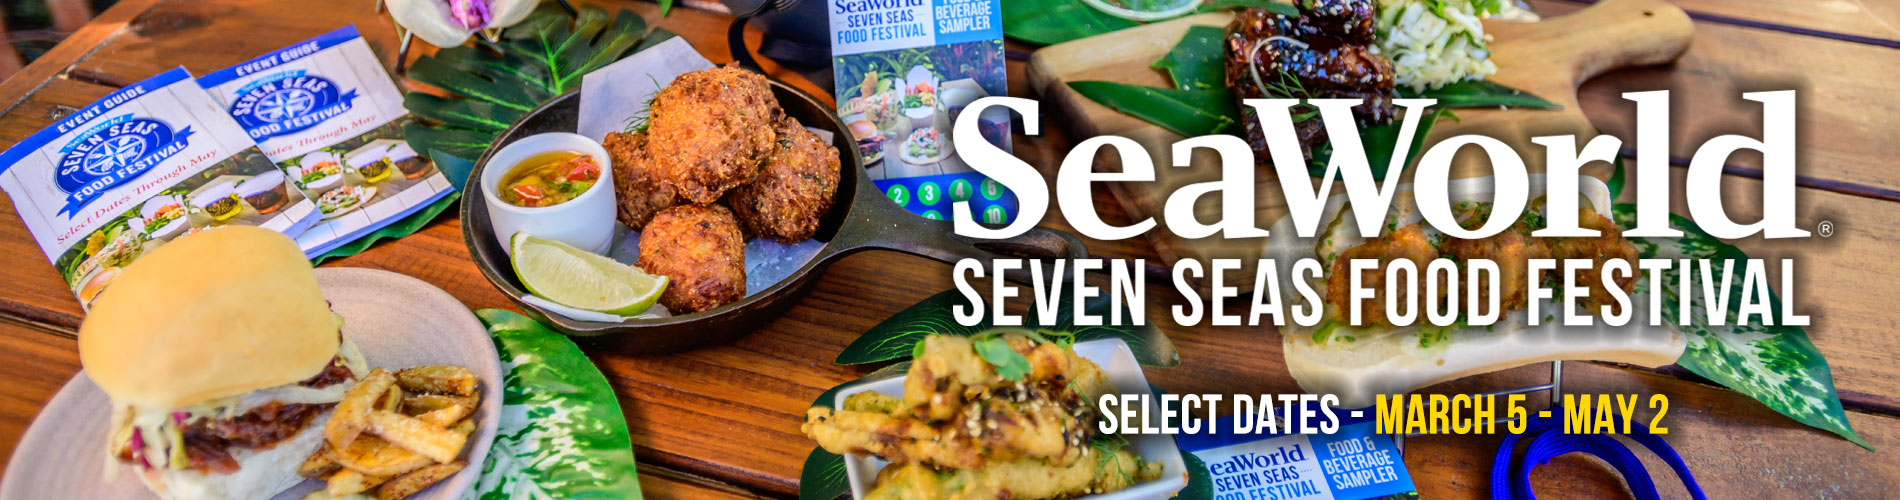 Seven Seas Food Festival at SeaWorld San Diego